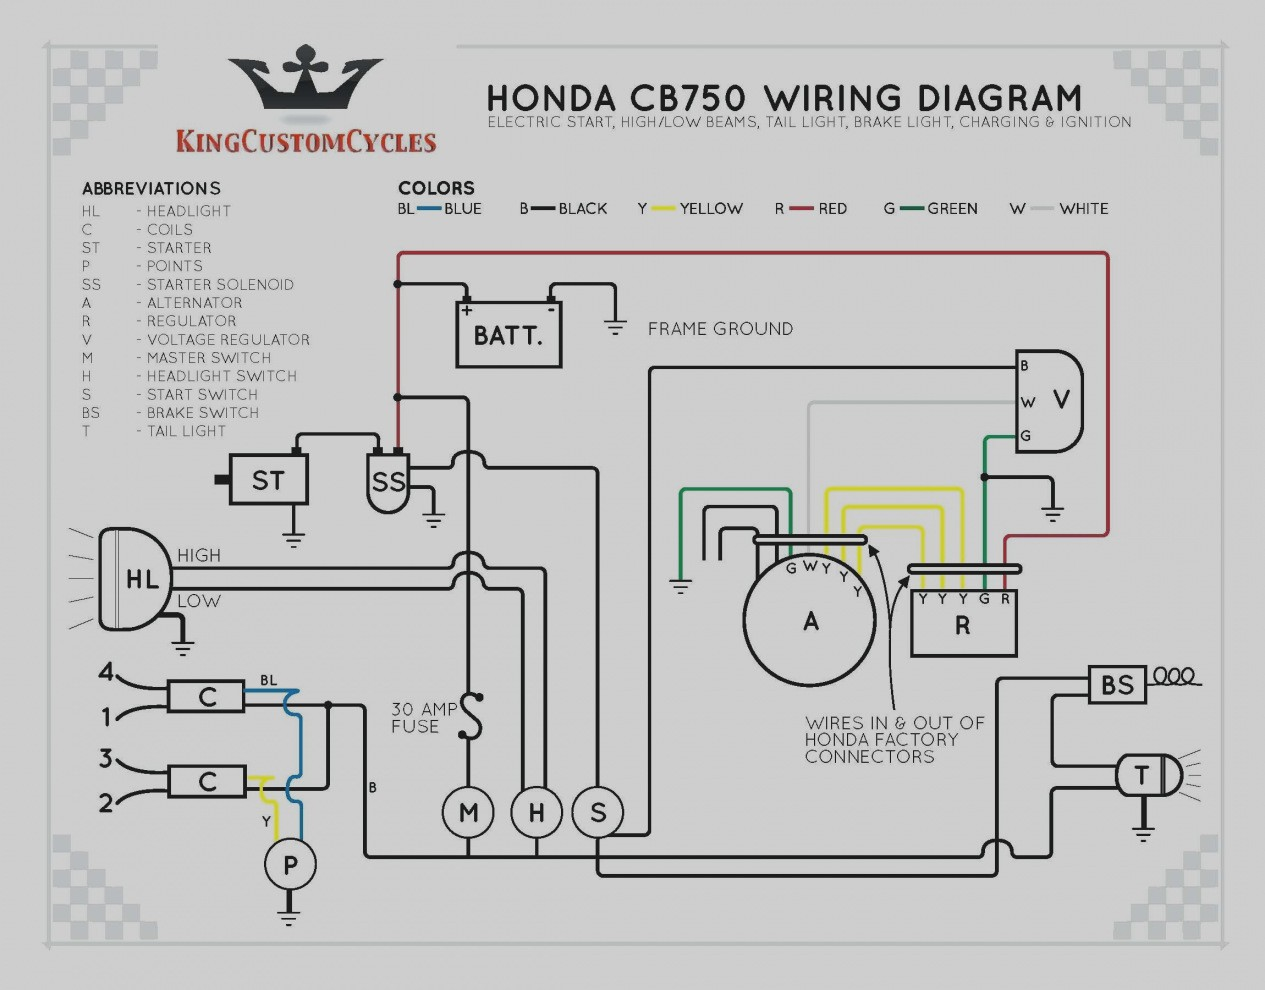 [SCHEMATICS_4PO]  Car Voltage Regulator Wiring Diagram - 95 Mitsubishi Eclipse Fuel Injection Wiring  Diagram for Wiring Diagram Schematics | Delco Regulator Wiring Schematic |  | Wiring Diagram